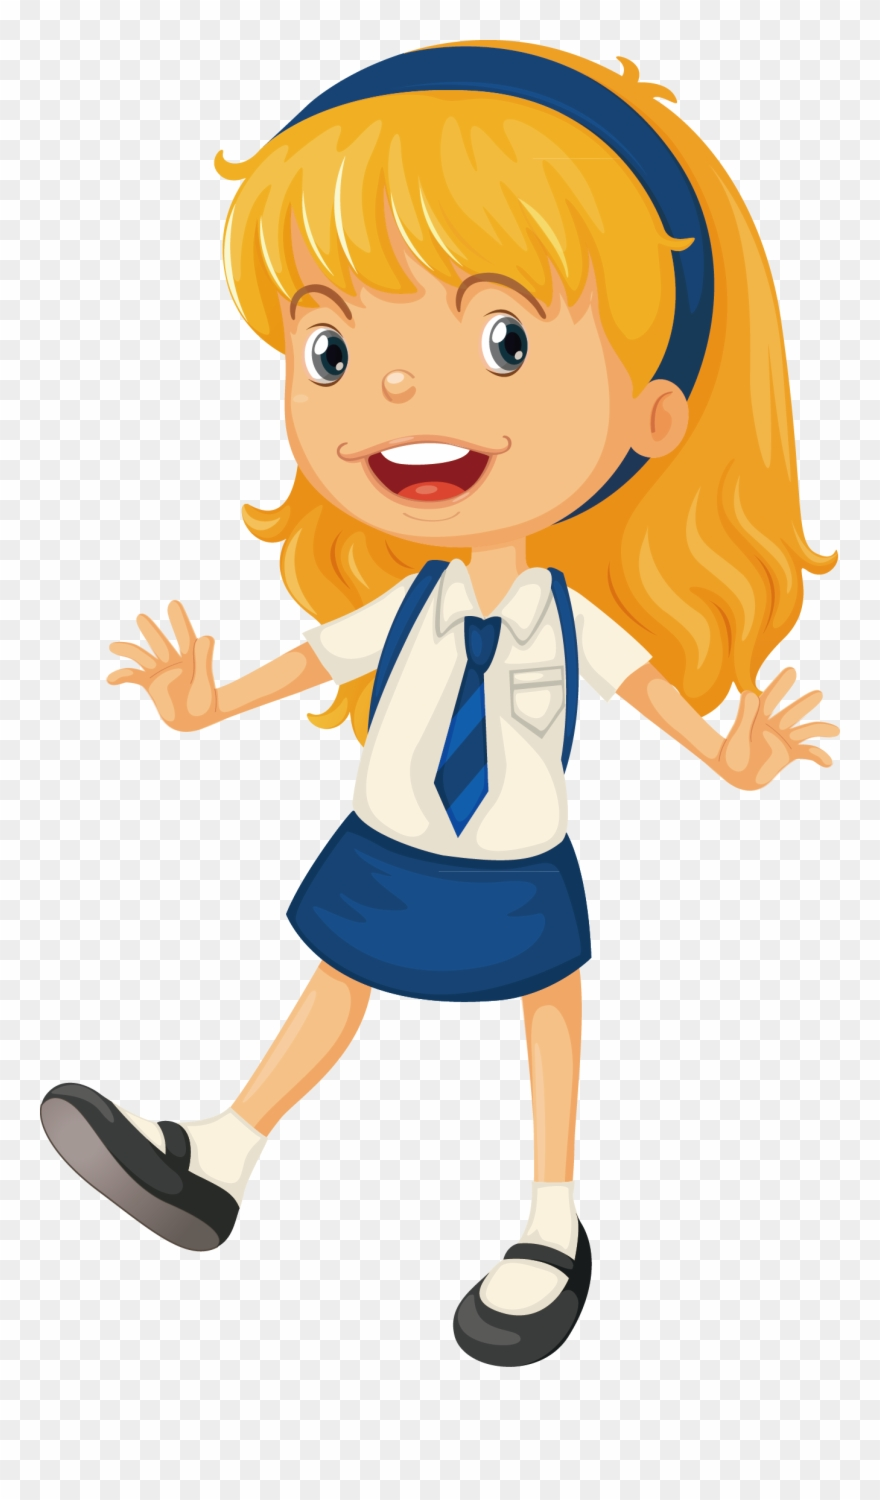 Animation Schools School Uniform Girls Starting School Cartoon